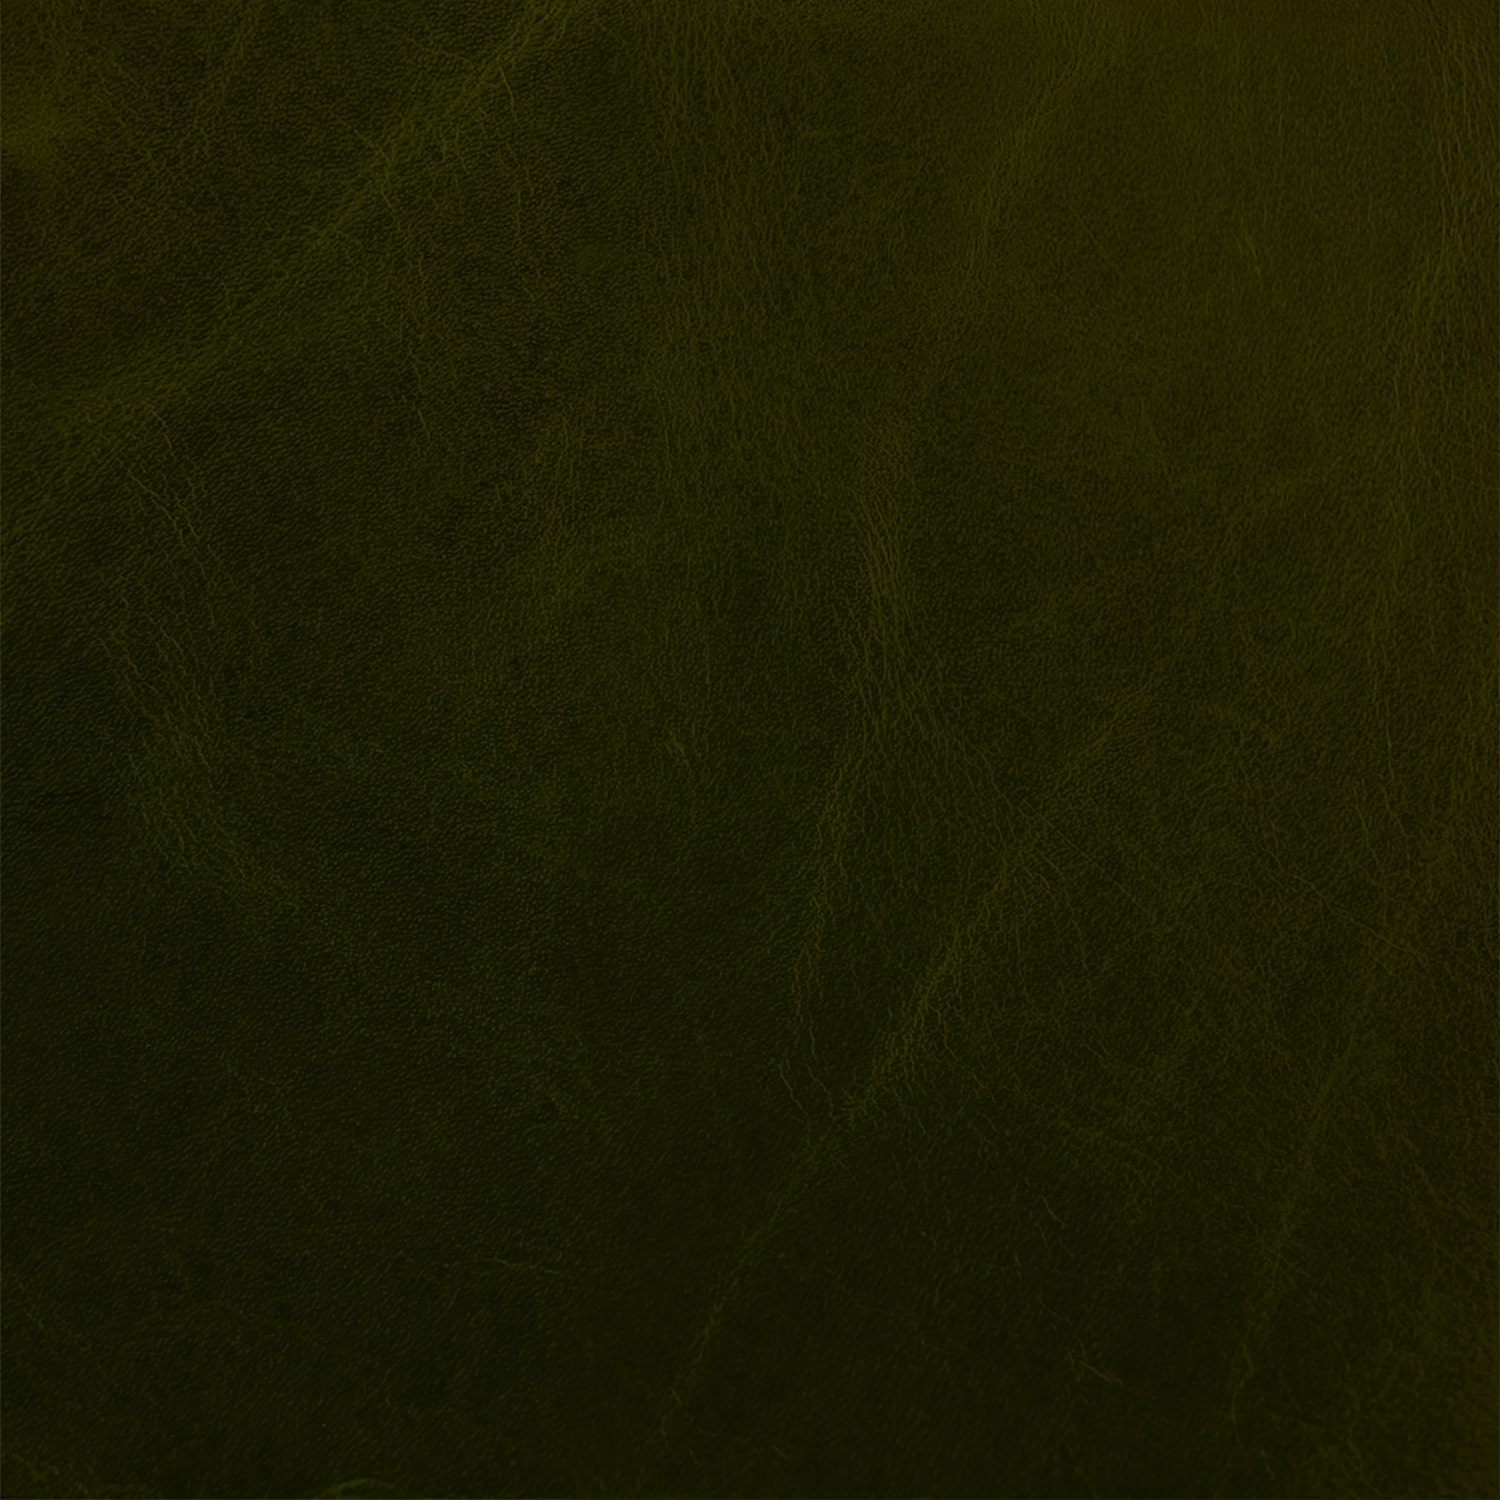 Flagstaff: Smoke (grade G): #FLG1620<br>Unique distressed markings, permiated with wax, rich vibrant color; light protection